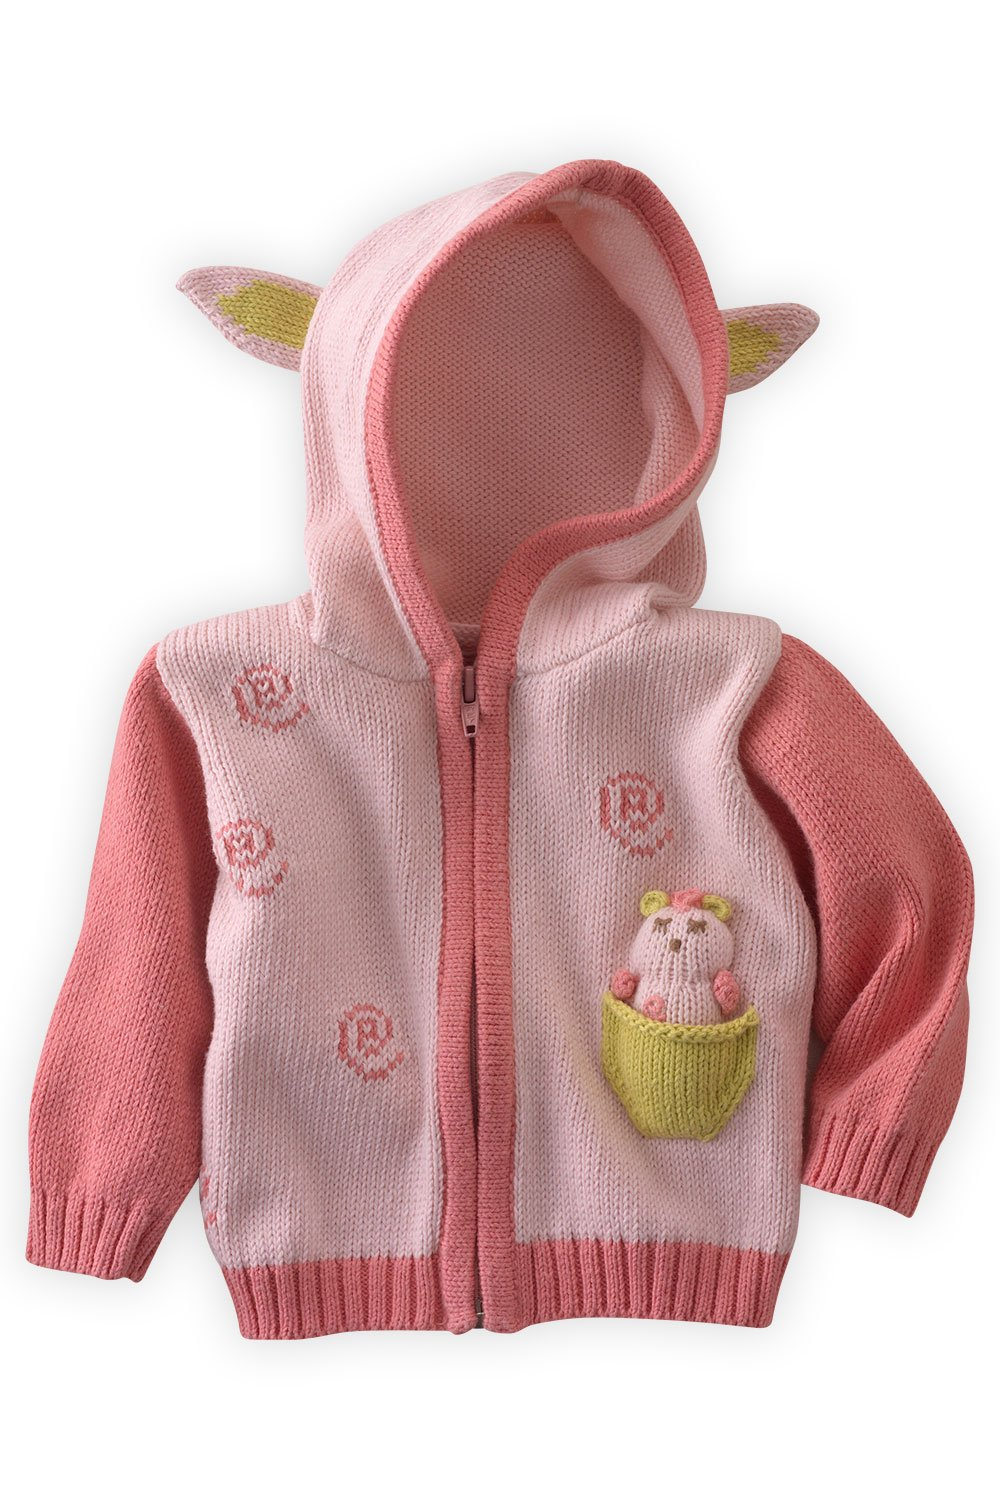 Joobles Organic Baby Cardigan Sweater - Cutie The Lamb (12-18 Mos) Pink by Joobles